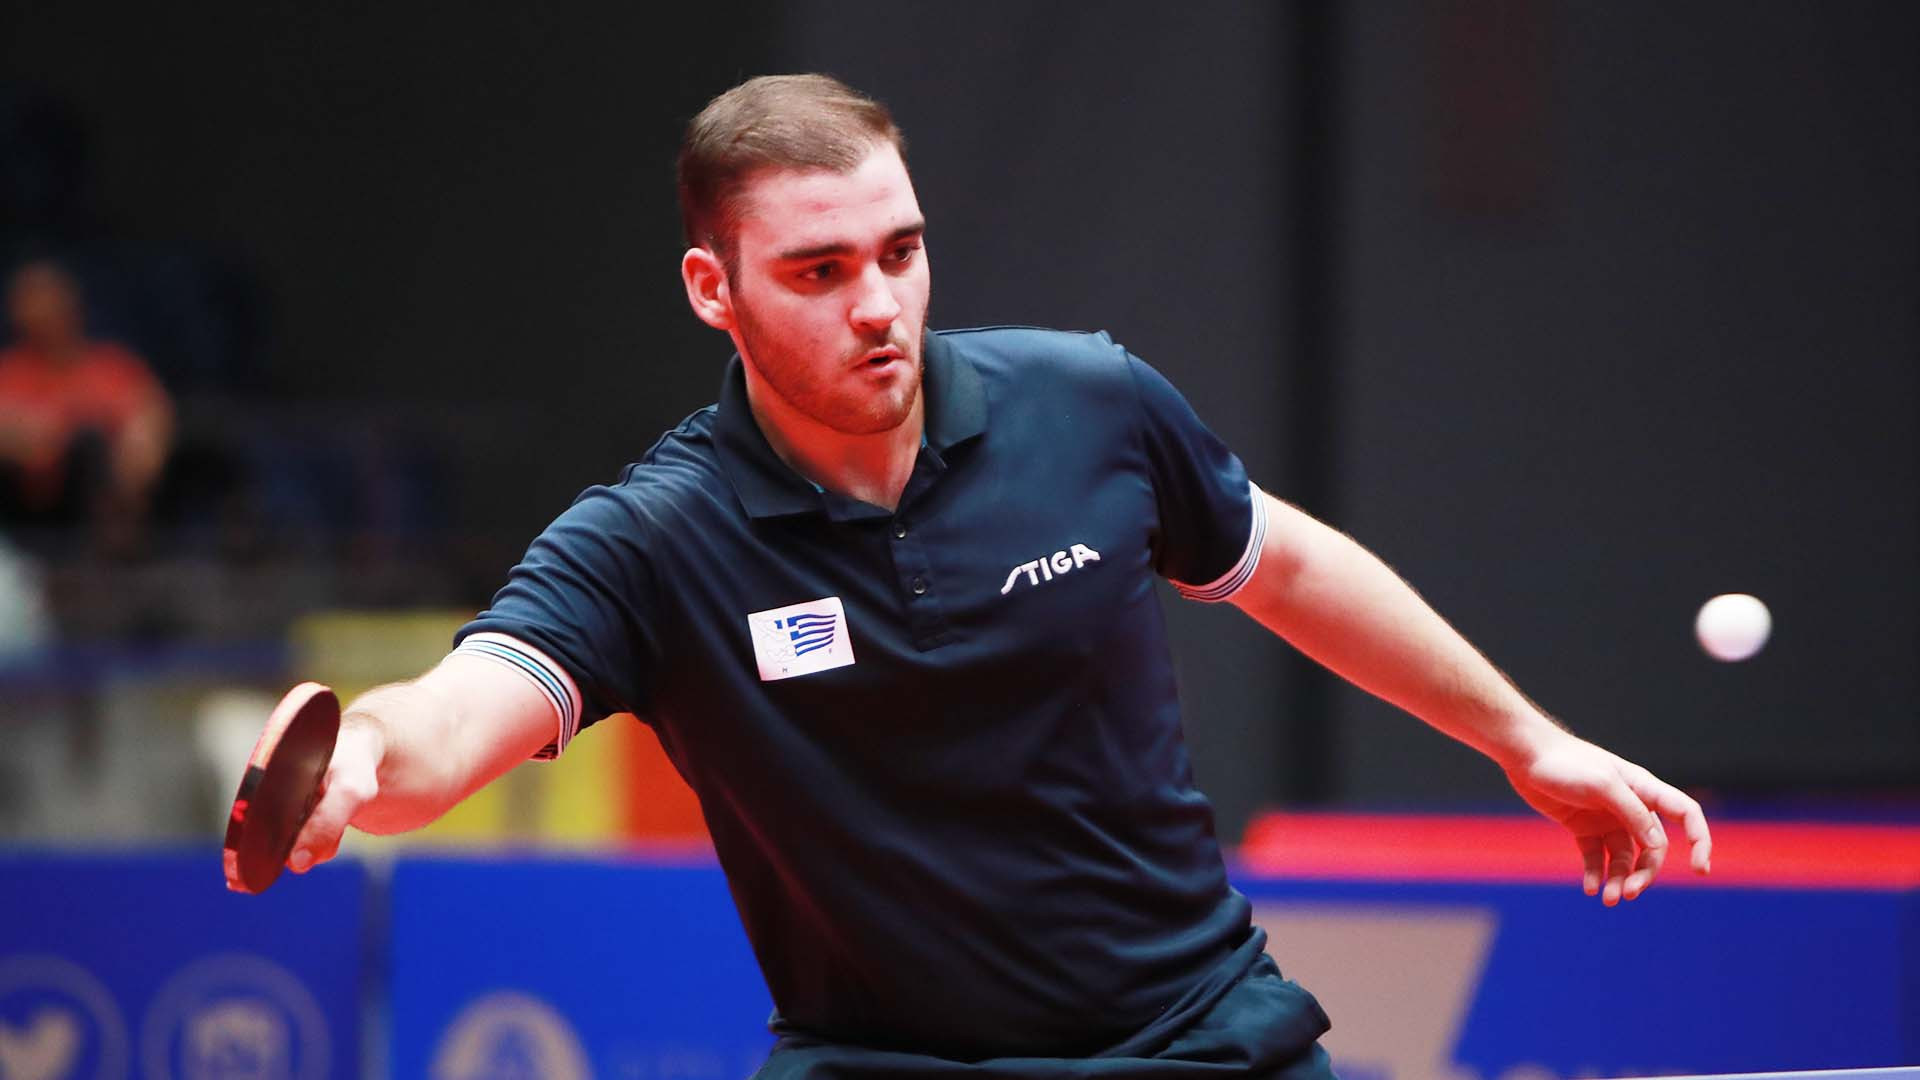 Greece's fifth-seeded Ioannis Sgouropoulos made a winning start on the second day of individual competition at the ITTF World Junior Champonships in Bendigo ©ITTF